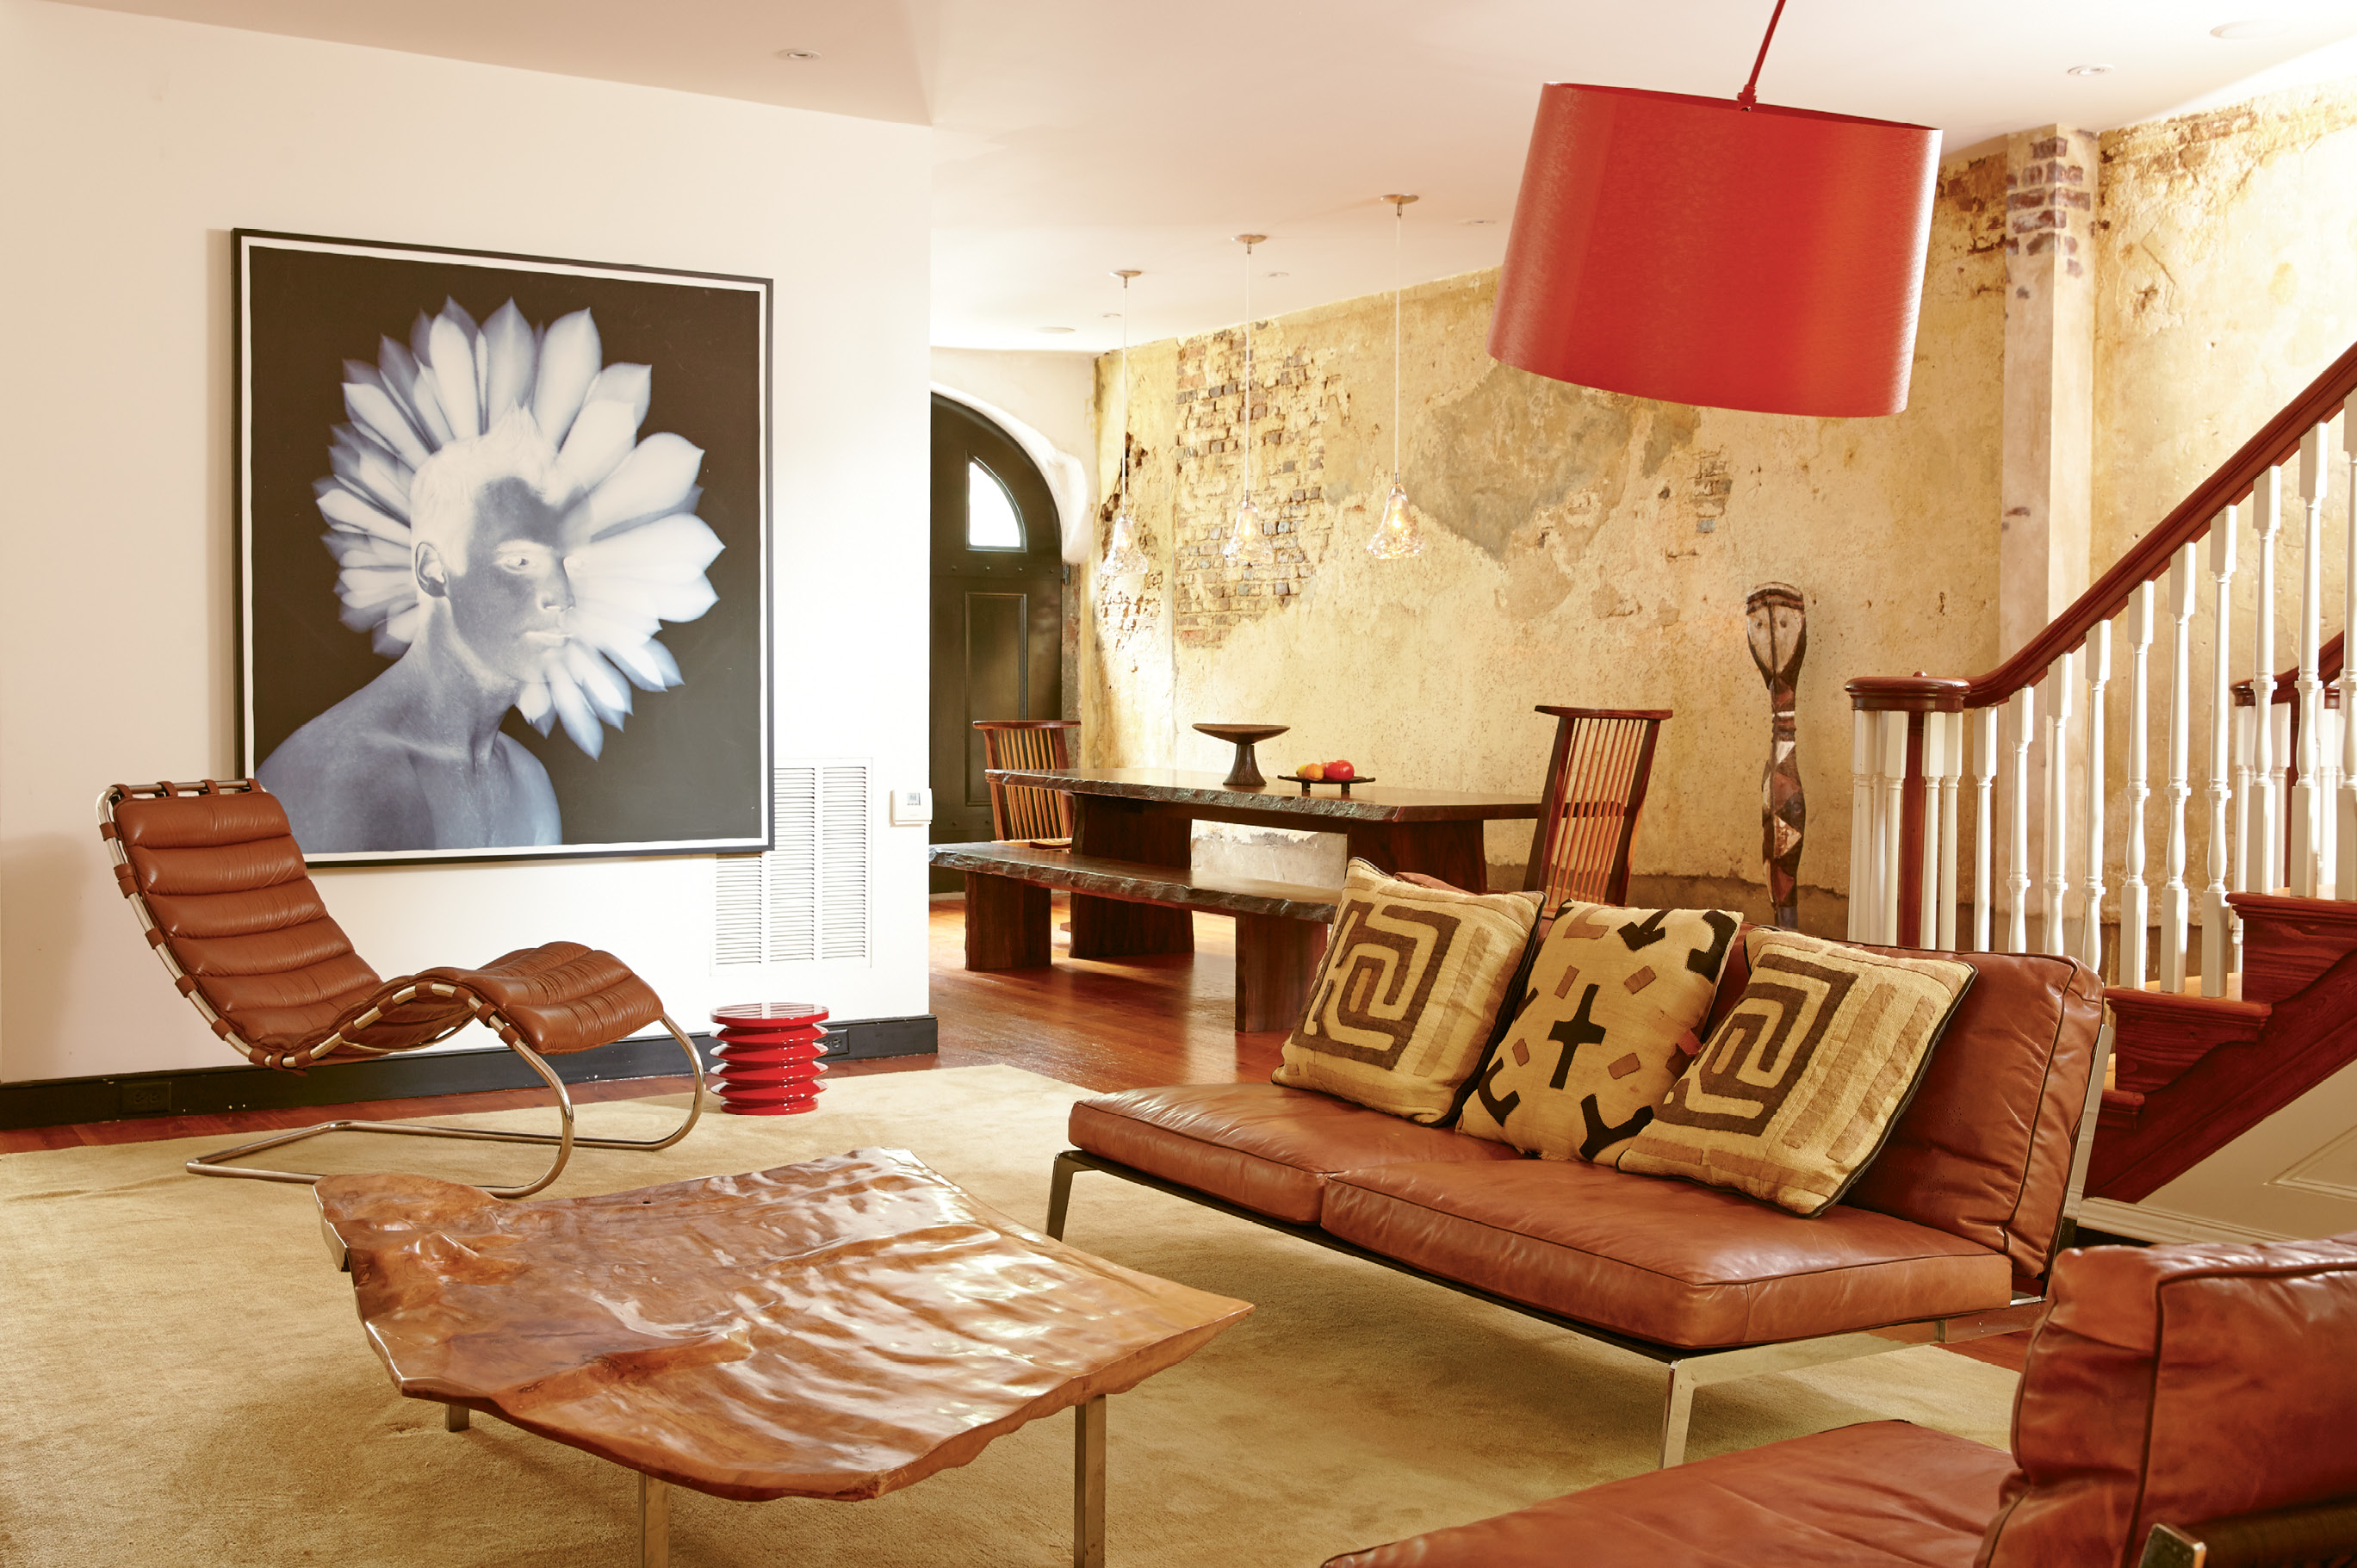 OUT OF AFRICA: Exotic textiles and a sculpture from Suzanne's time in Africa lend a global bent to this dining and lounge space.